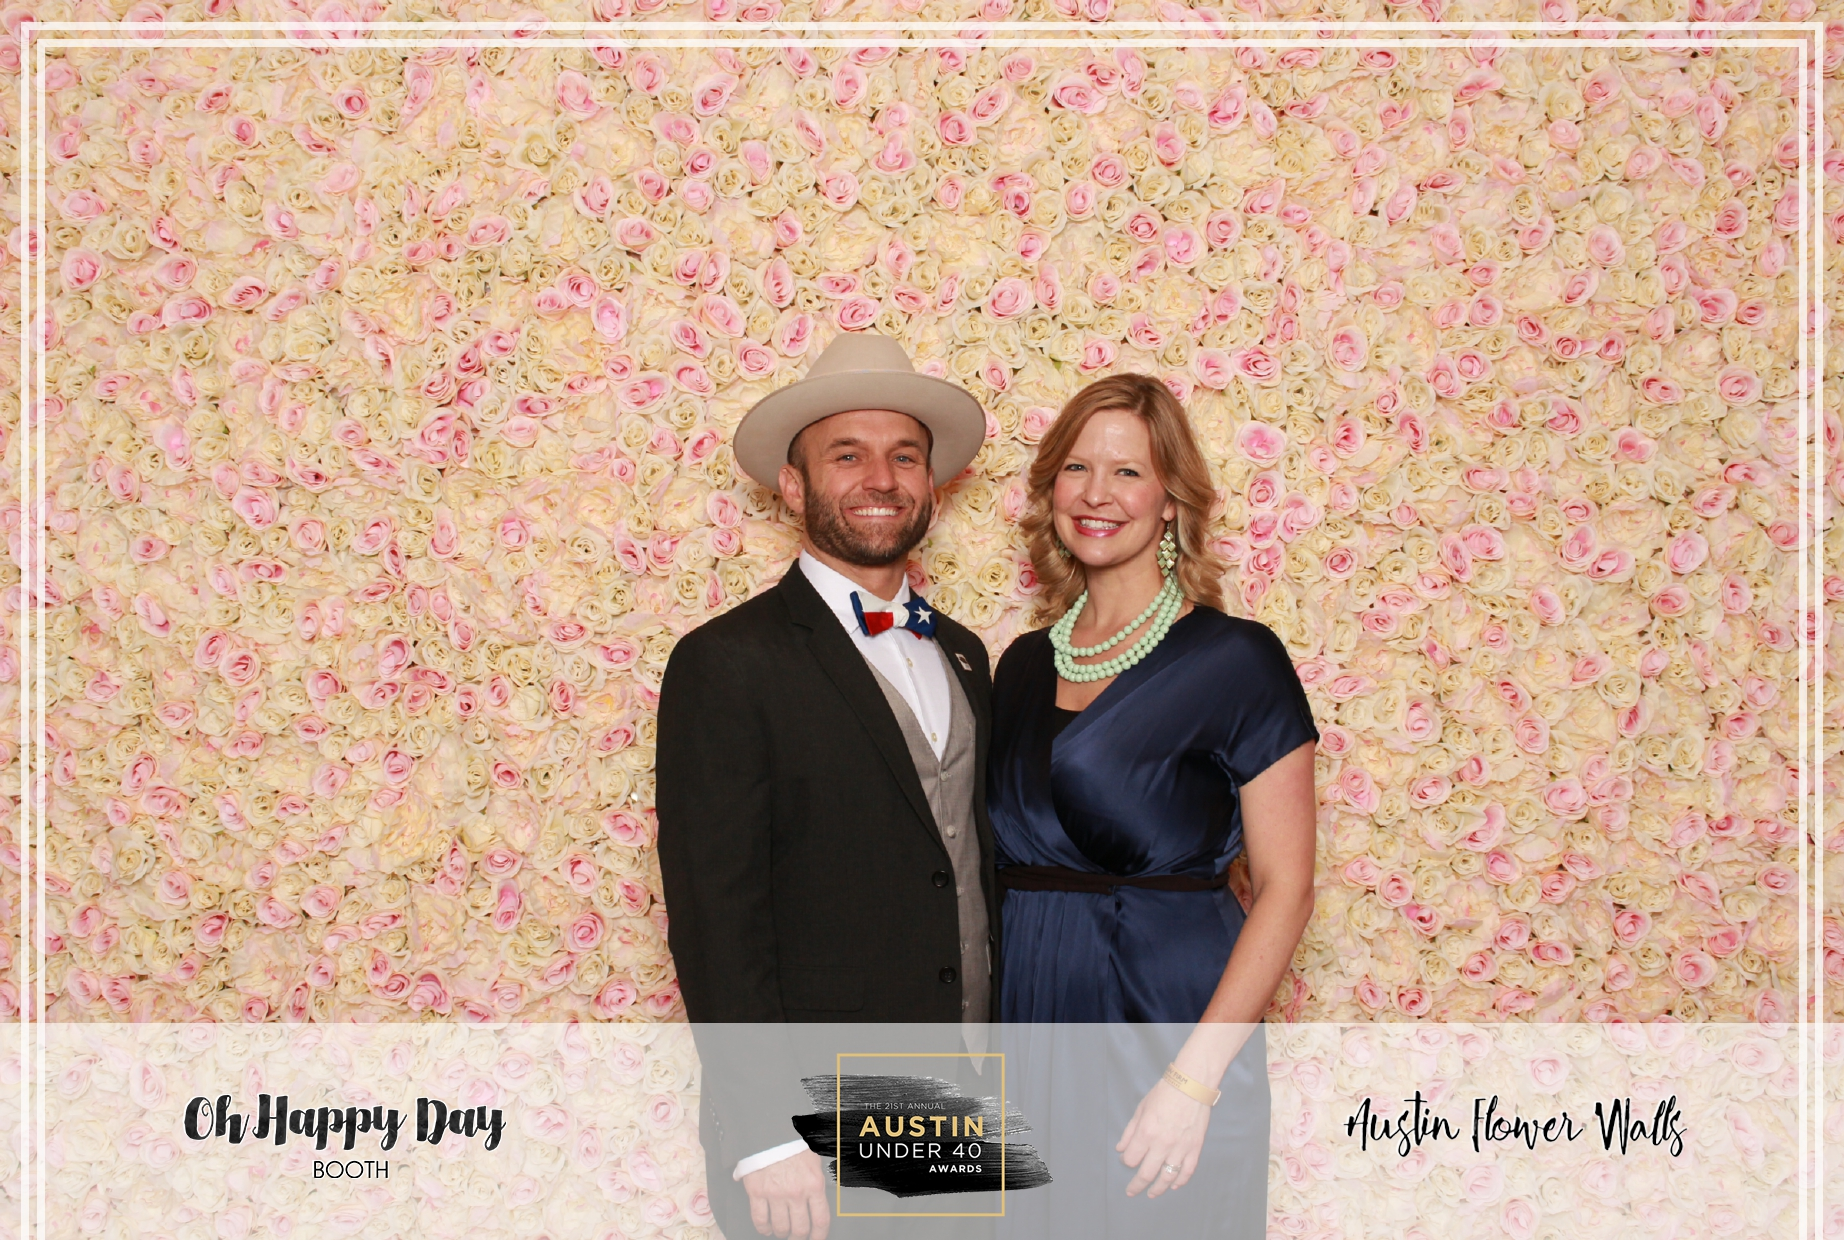 Oh Happy Day Booth - Austin Under 40-74.jpg